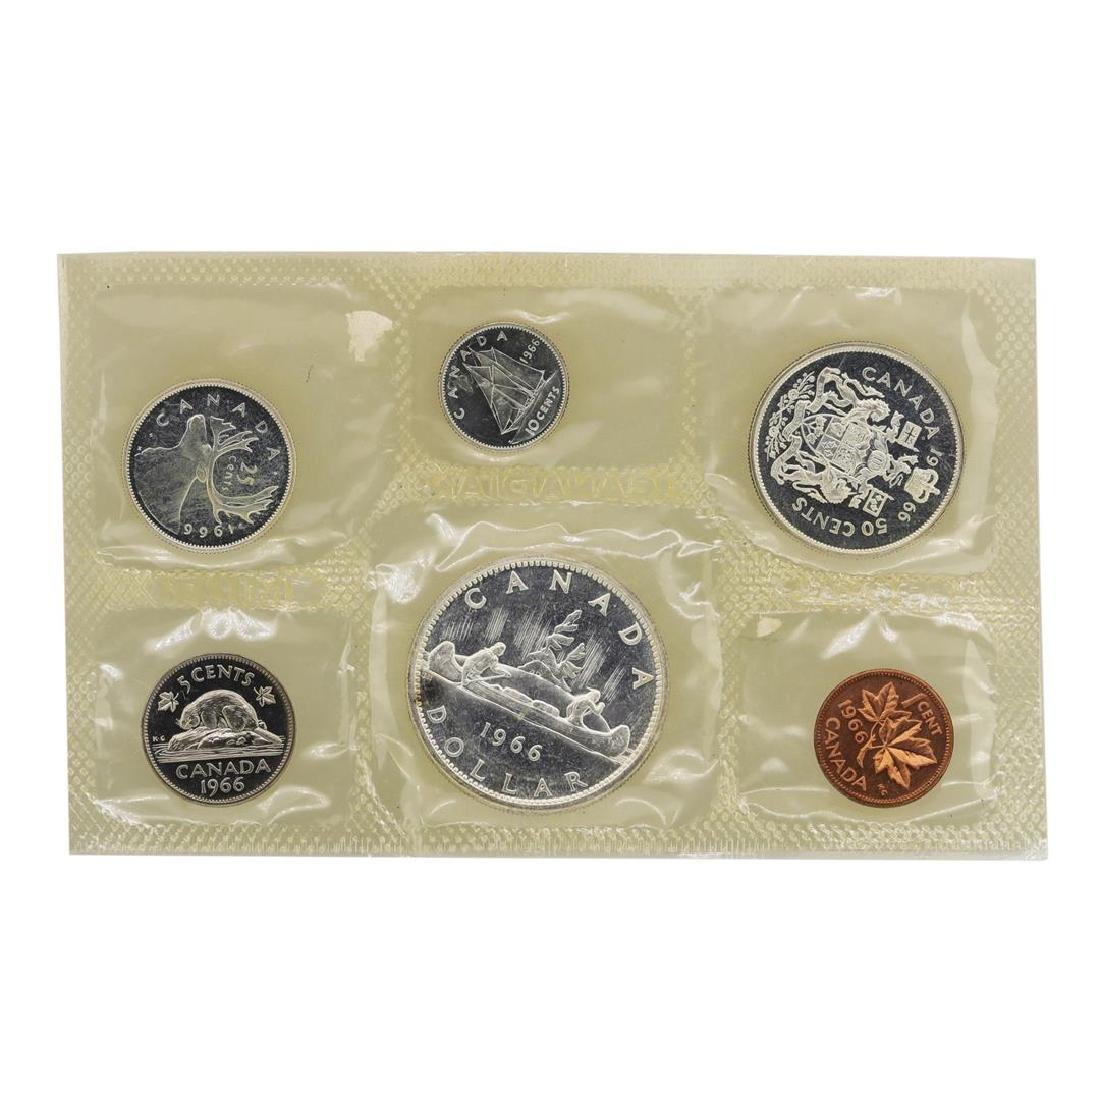 Lot of 1965-1967 Canada (6) Coin Proof Sets w/ Envelope - 5